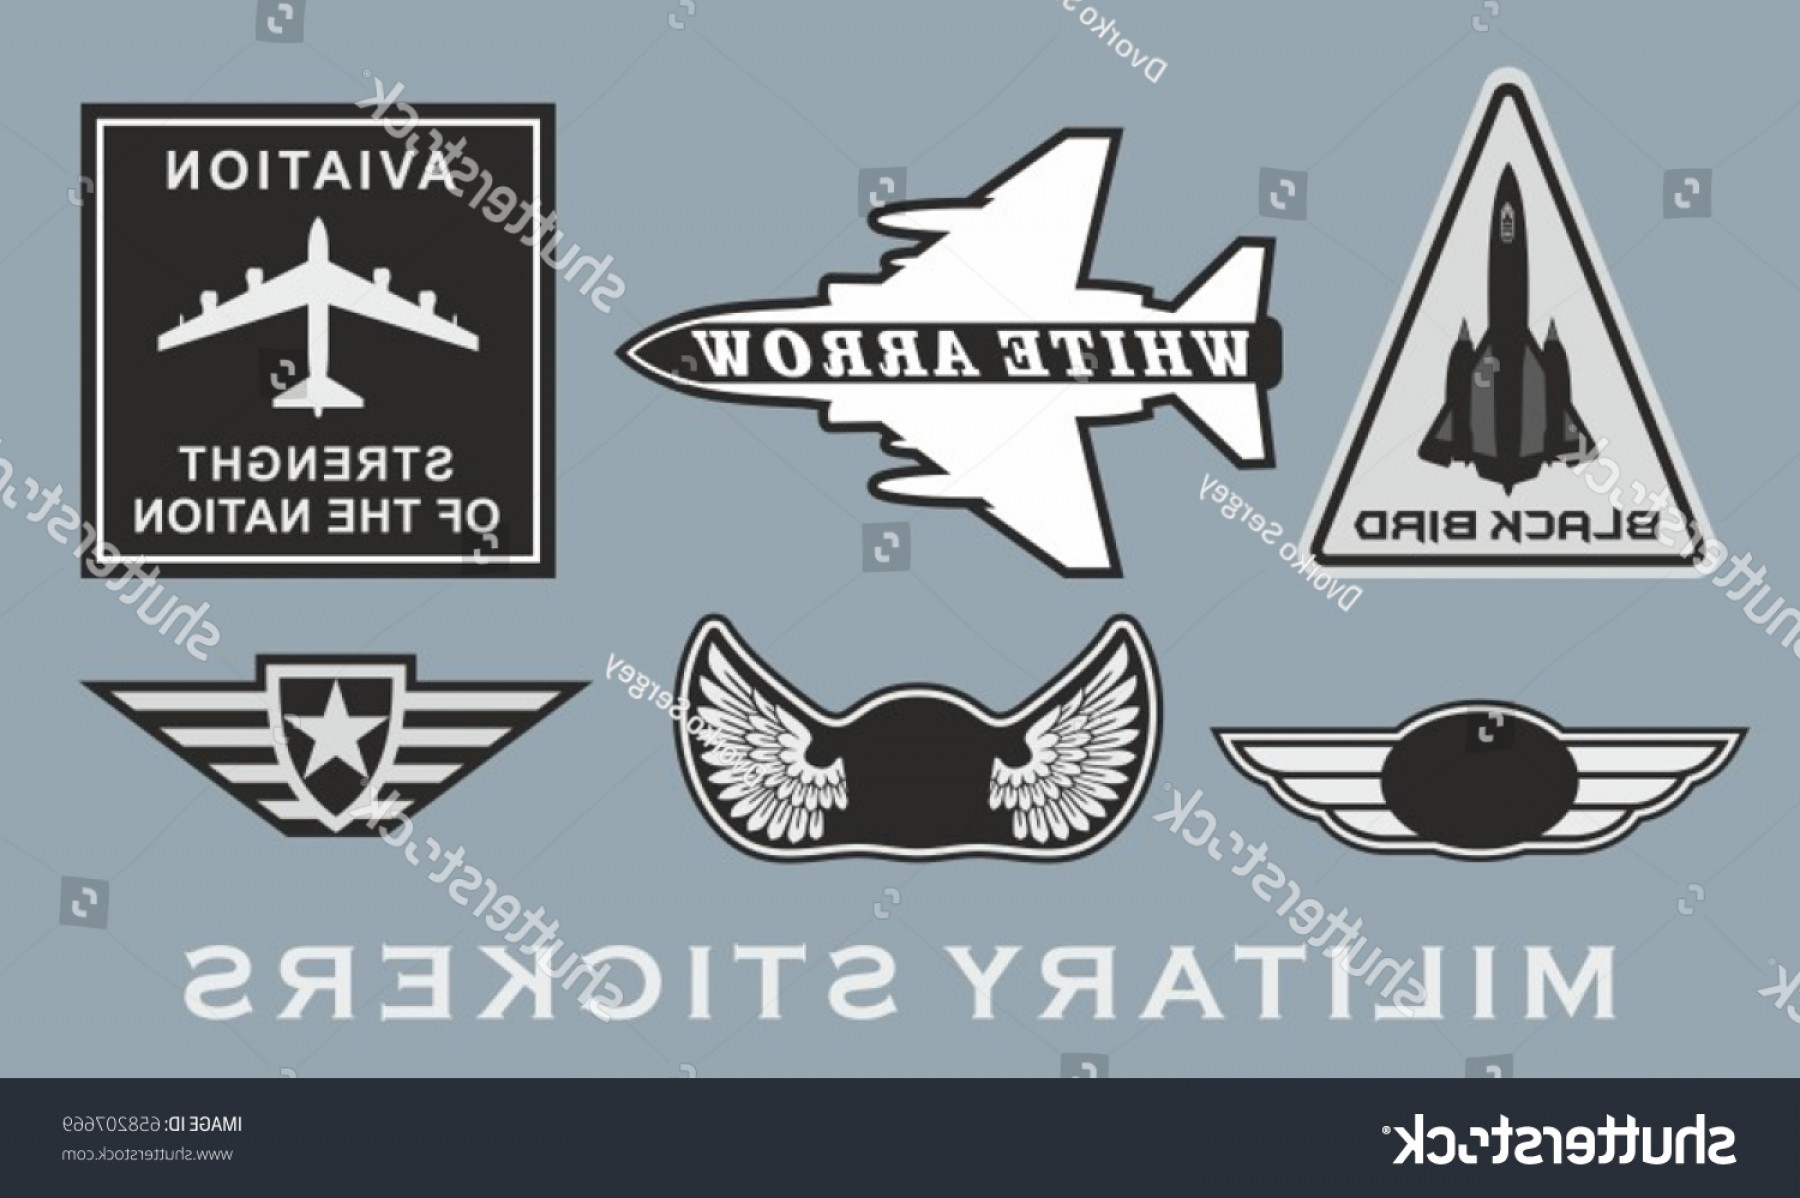 USAF Vector: Military Stripes Theme Us Air Force